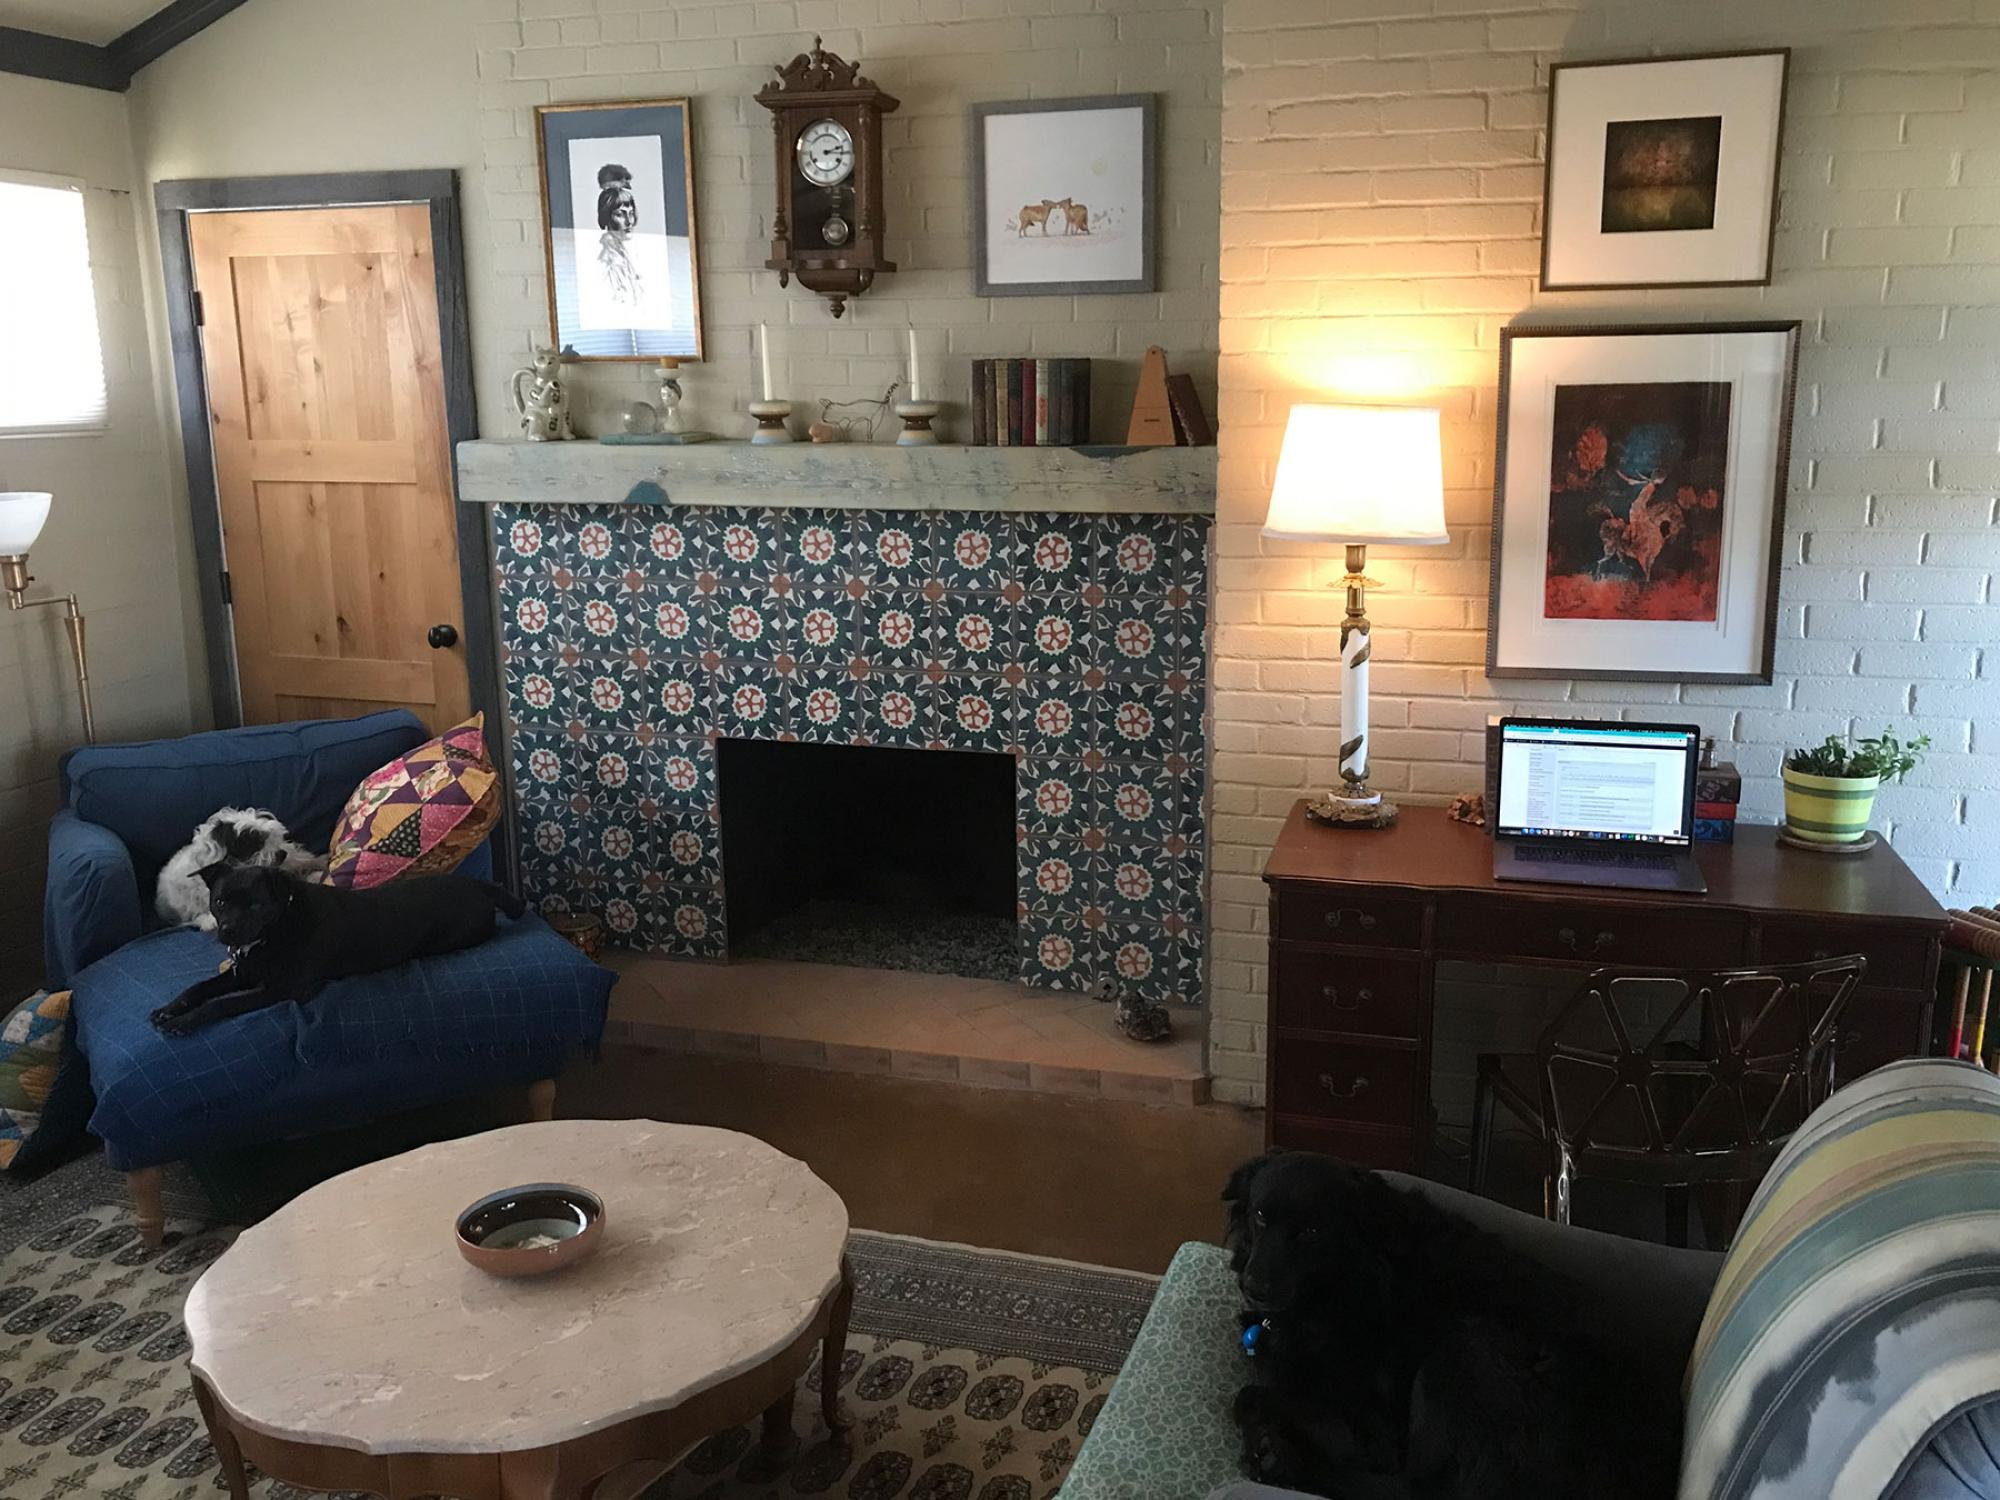 All three of my dogs – Poppy, Huckleberry and Ernie – managed to be hanging out calmly long enough for me to take this picture of one of my two home workspaces. When my web development work requires an external monitor, I move my operation to the dining t